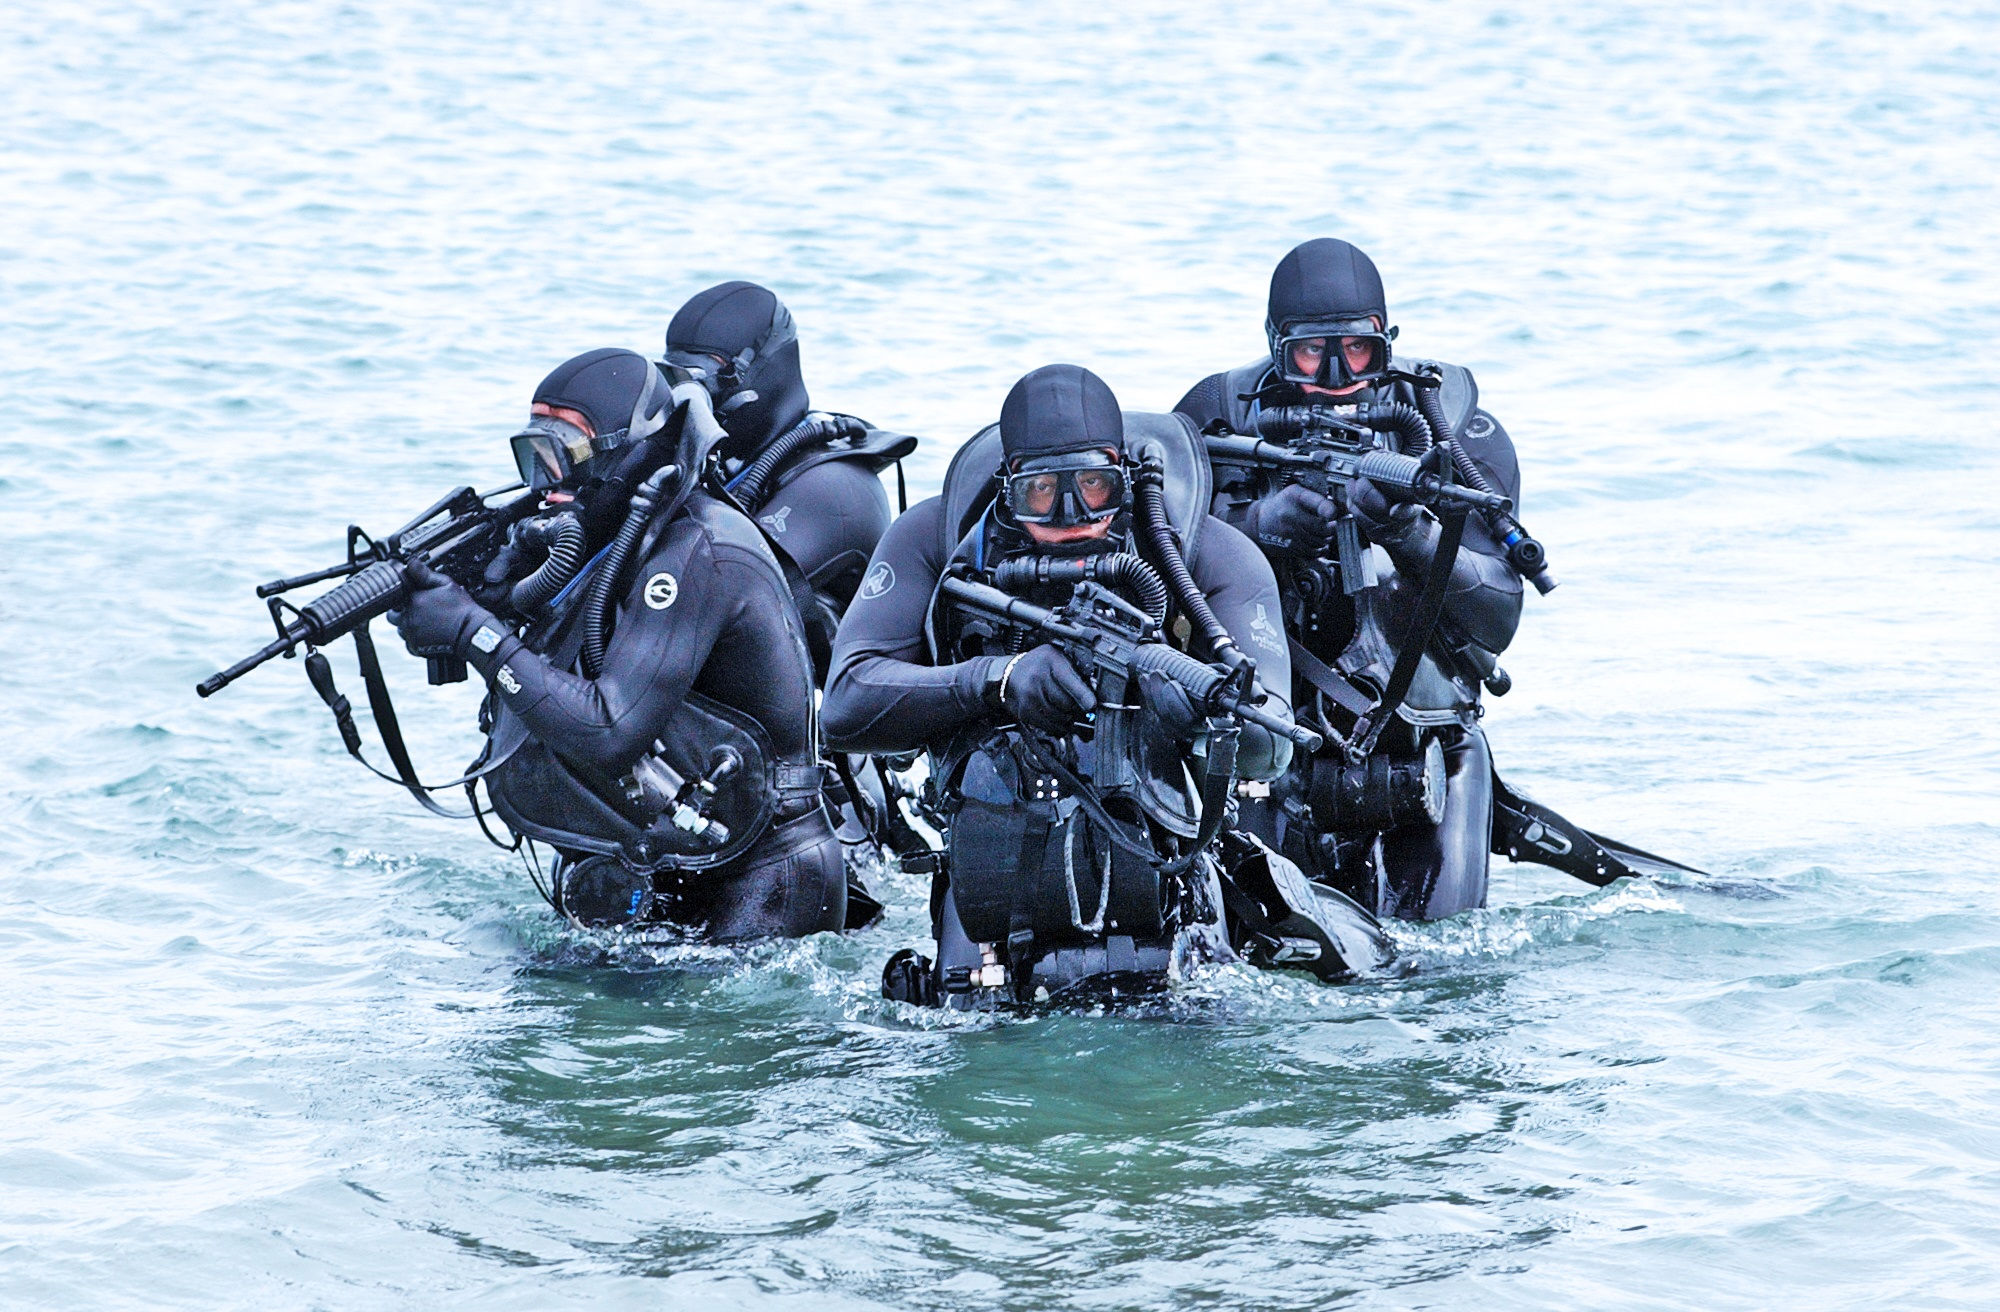 Navy SEALs set to open to women, top admiral says